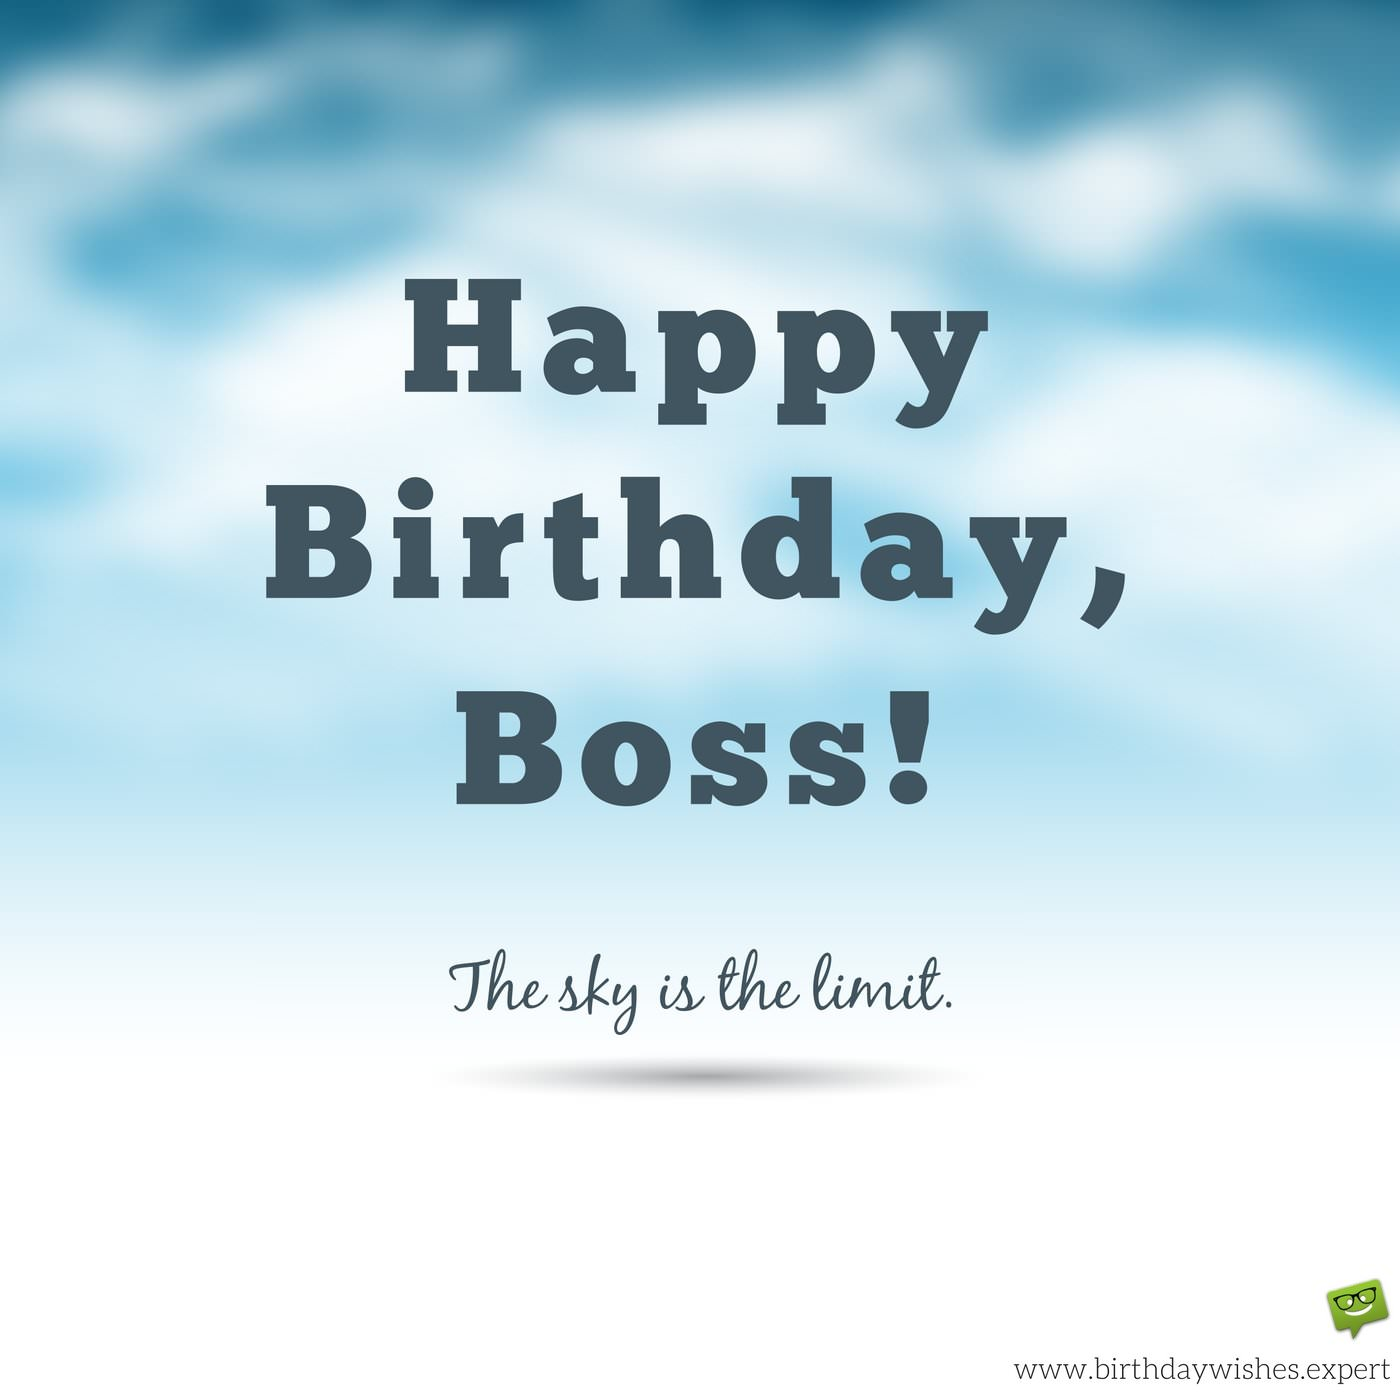 Birthday Greetings To Boss Happy Birthday Boss. The Sky Is The Limit. Wish On Image